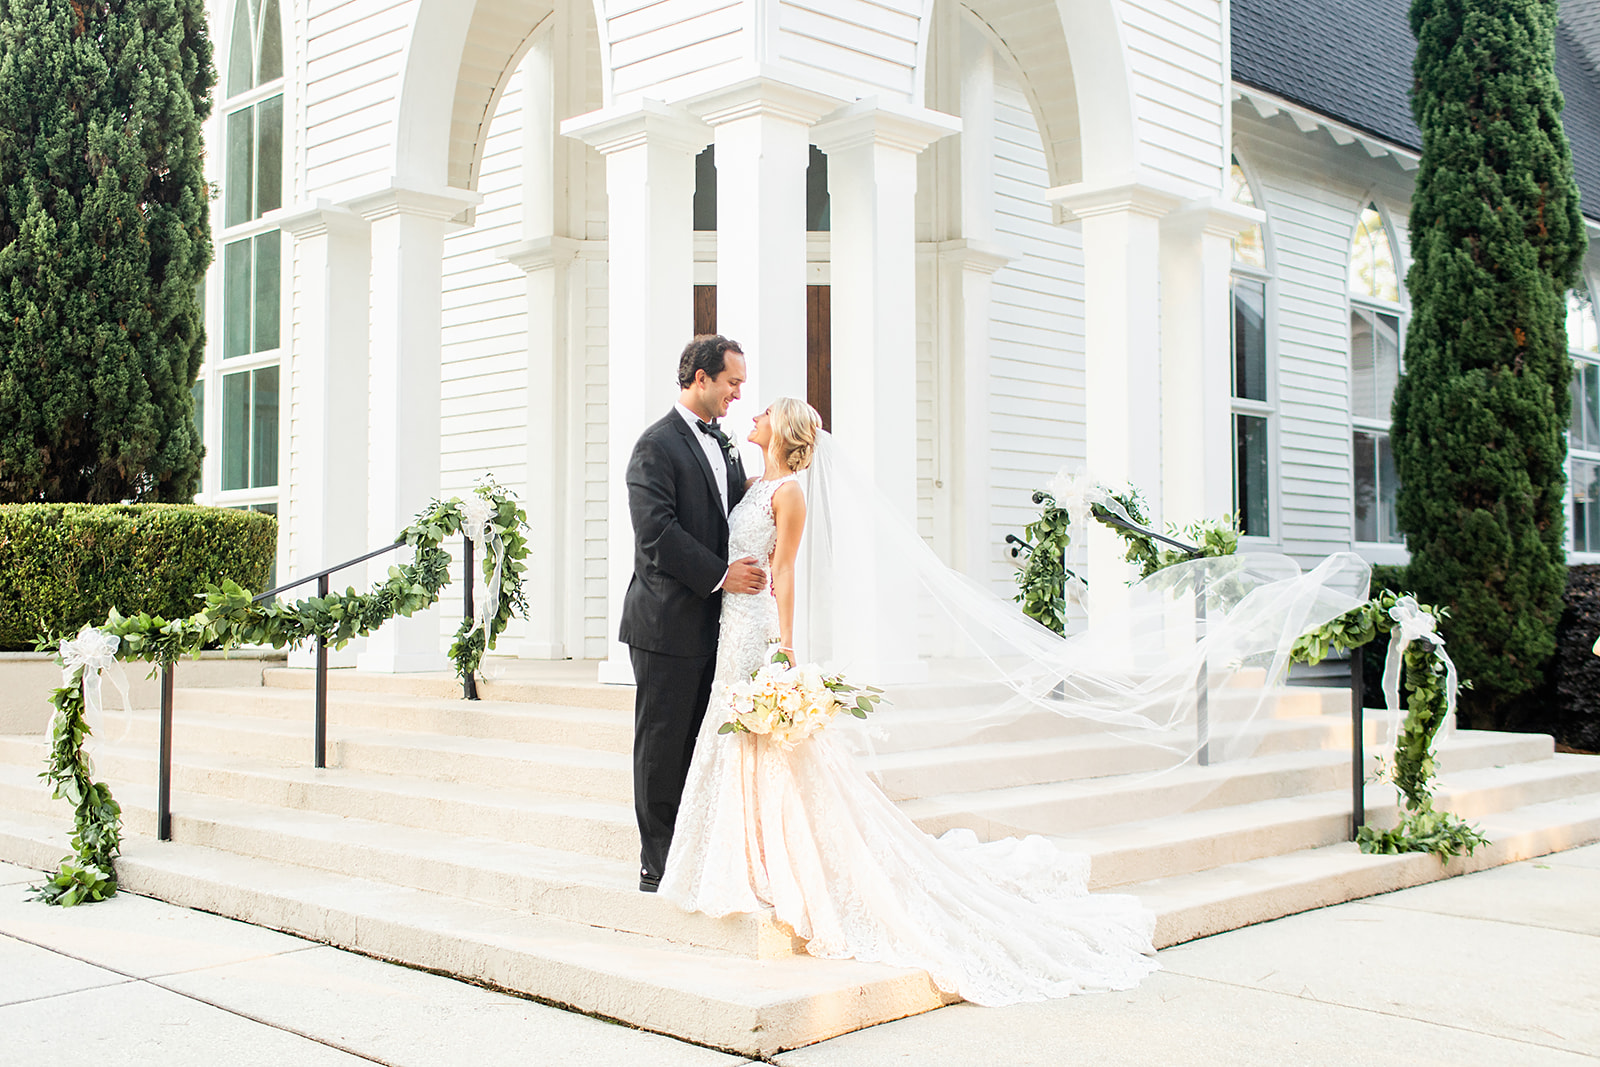 Blush-Black-Tie-Wedding-at-the-Grand-Hotel-in-Point-Clear-Alabama-Anna-Filly-Photography-Cross-Wedding-Bride_+_Groom-21.jpg